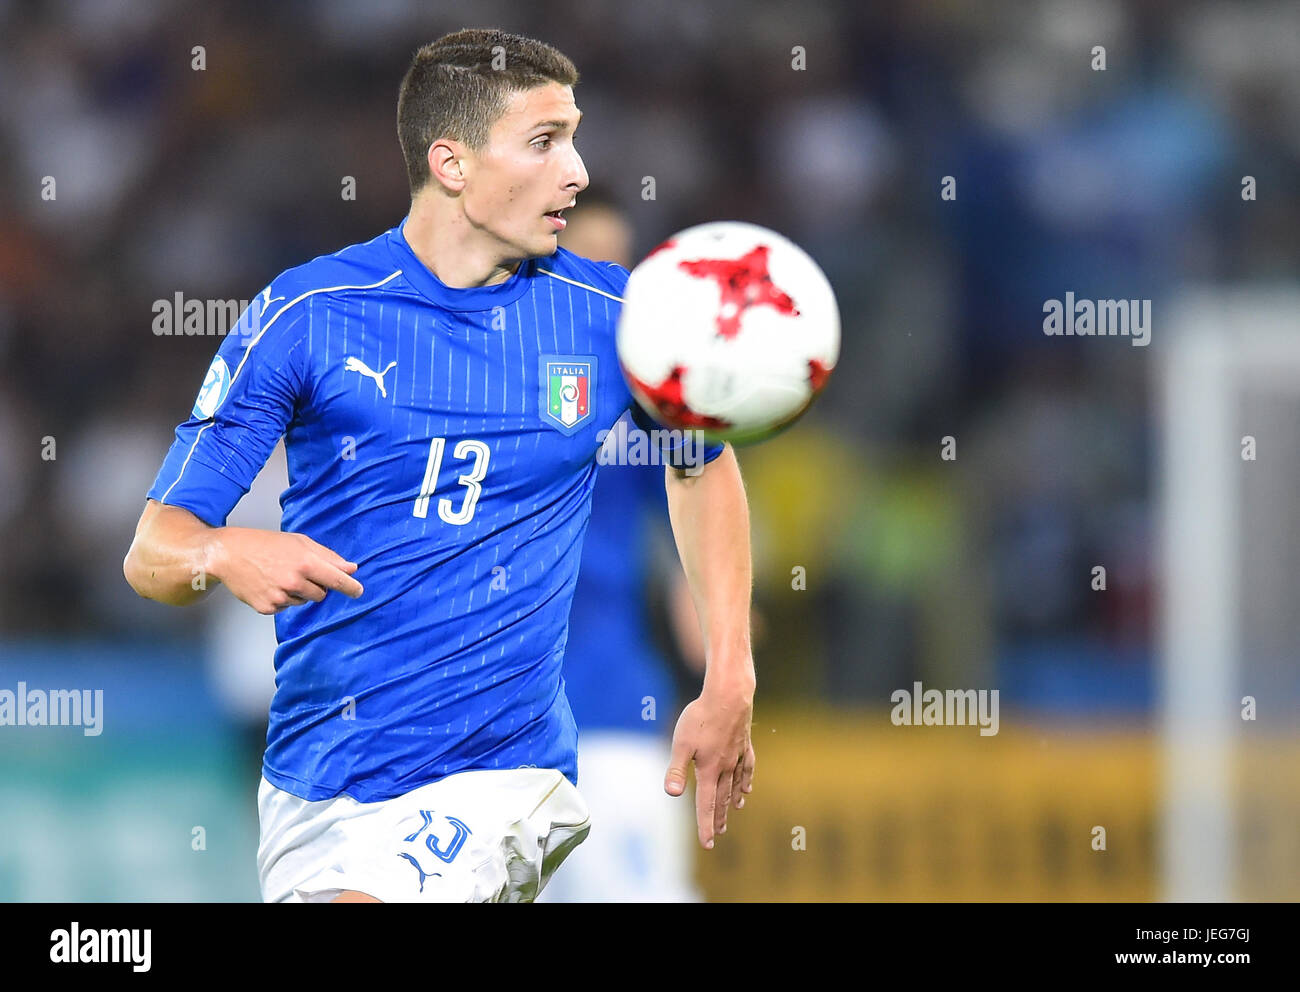 Mattia Caldara during the UEFA European Under-21 match between Italy and Germany on June 24, 2017 in Krakow, Poland. - Stock Image